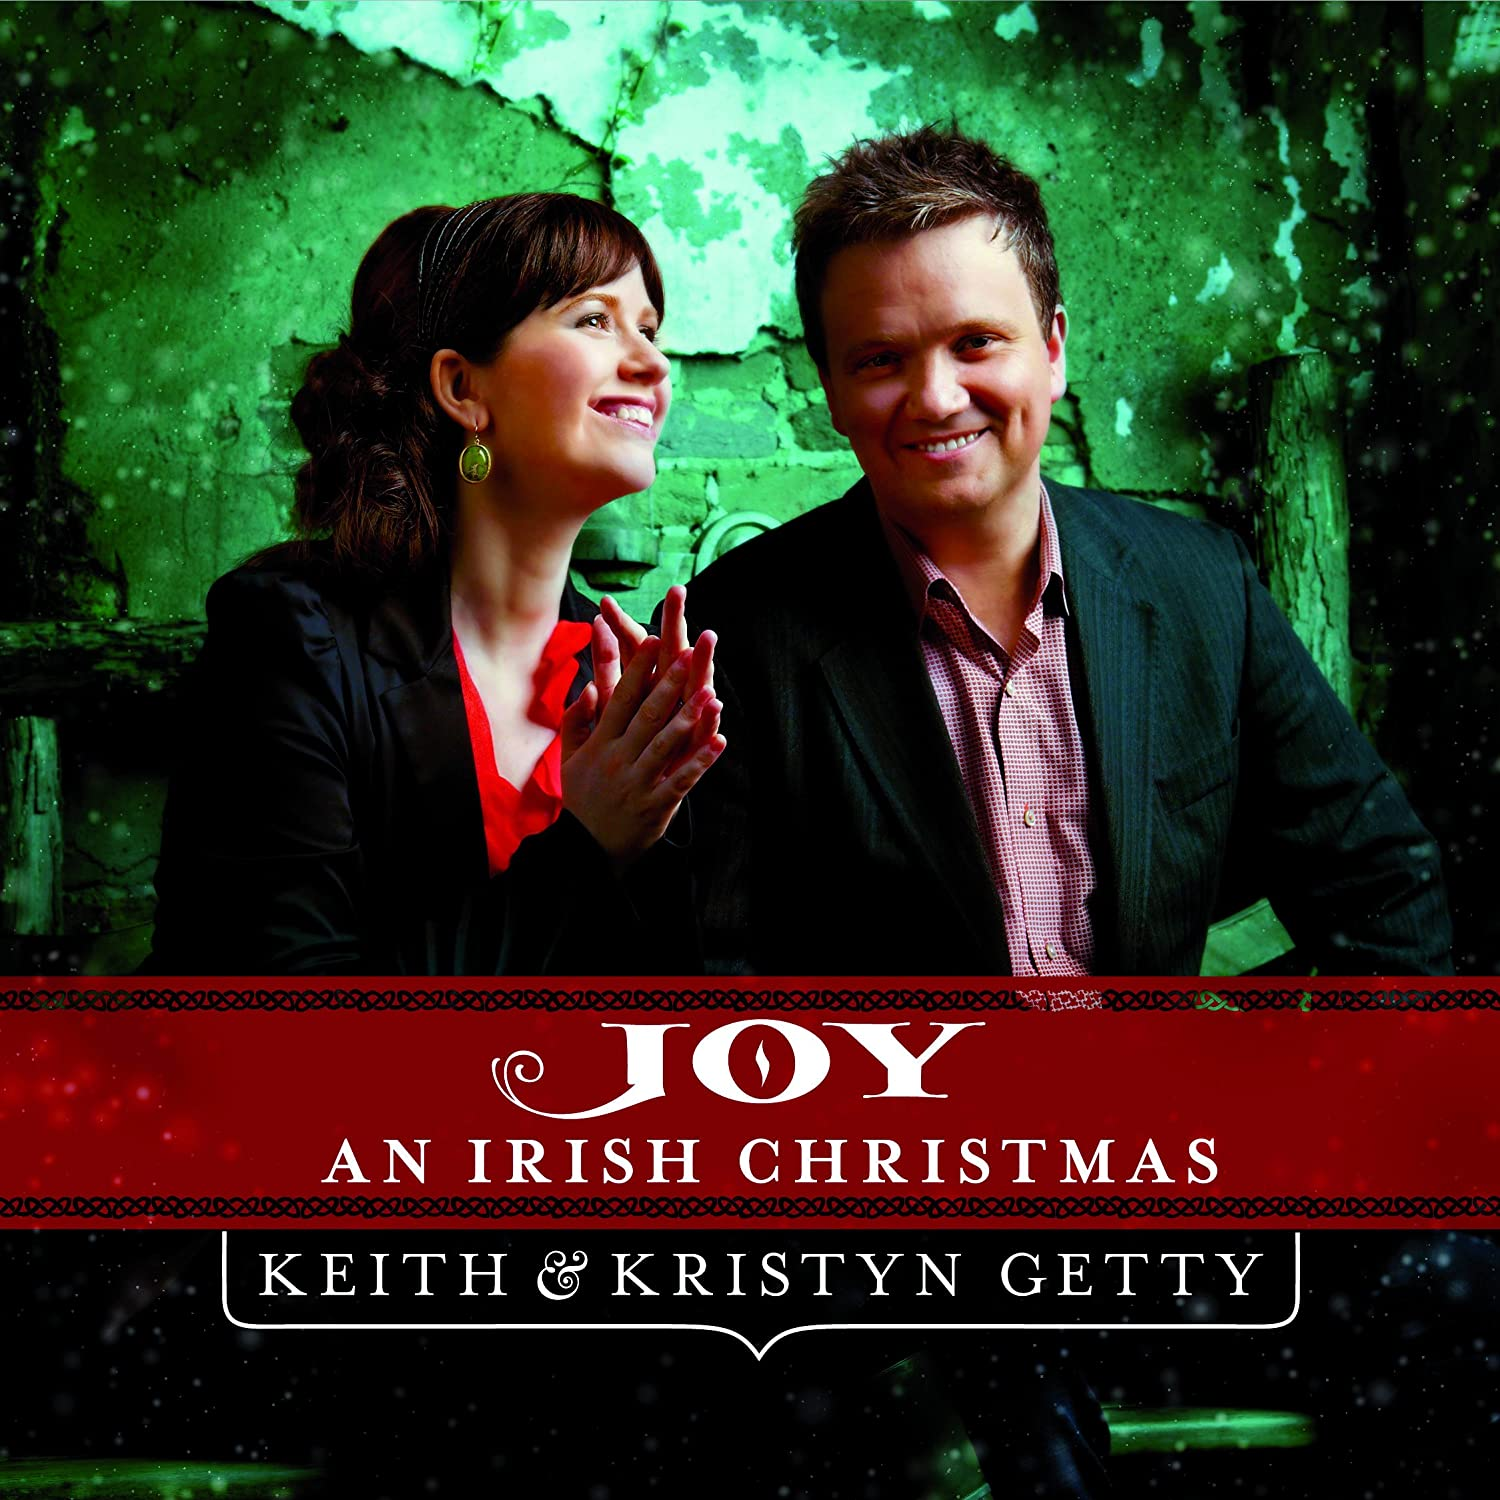 Joy: An Irish Christmas by Keith & Kristyn Getty: Amazon.co.uk: Music